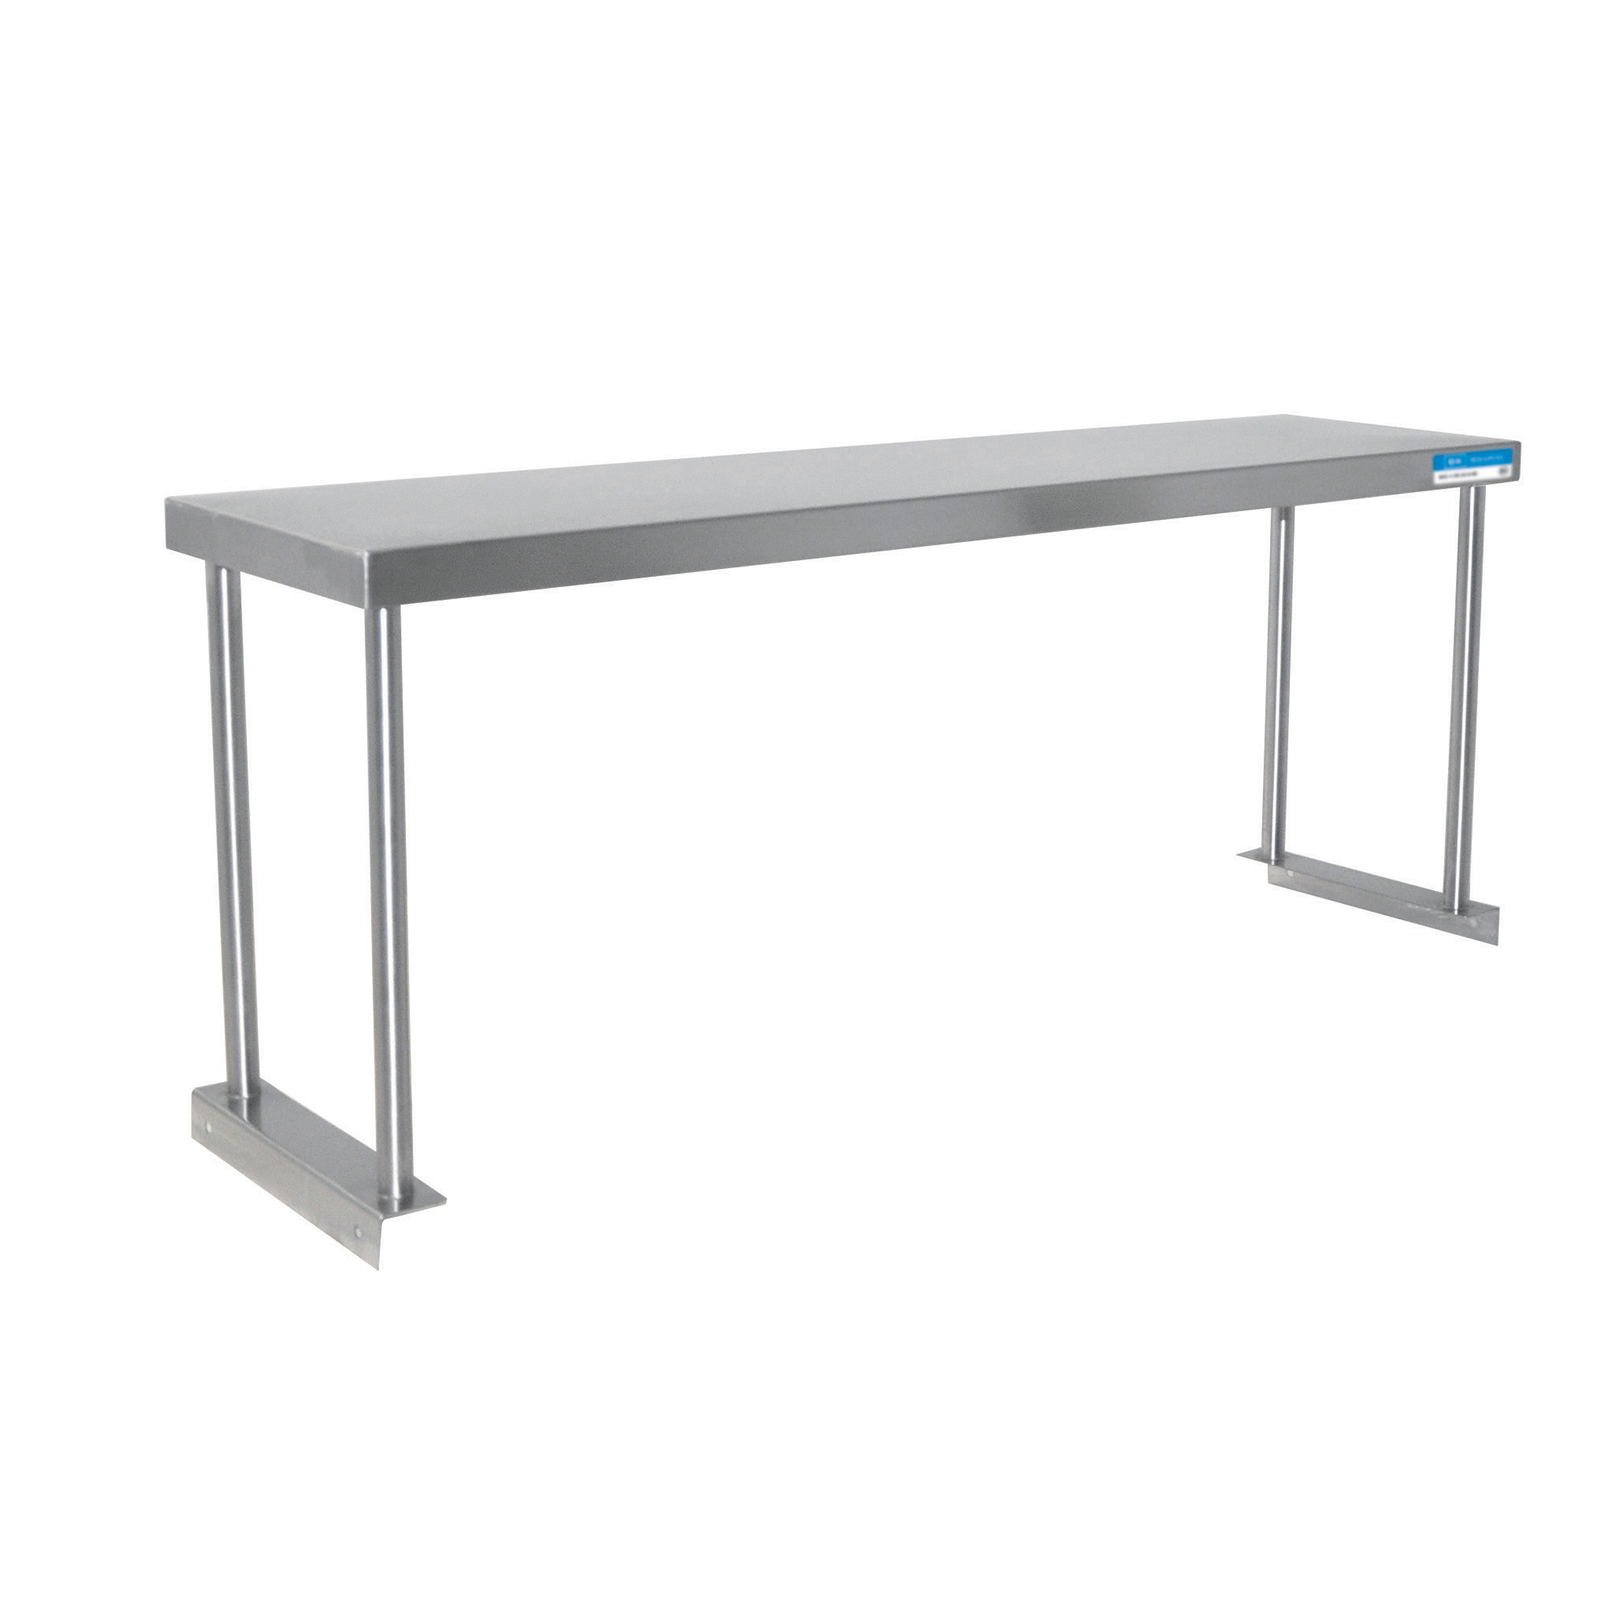 BK Resources BK-OSS-1896 overshelf, table-mounted